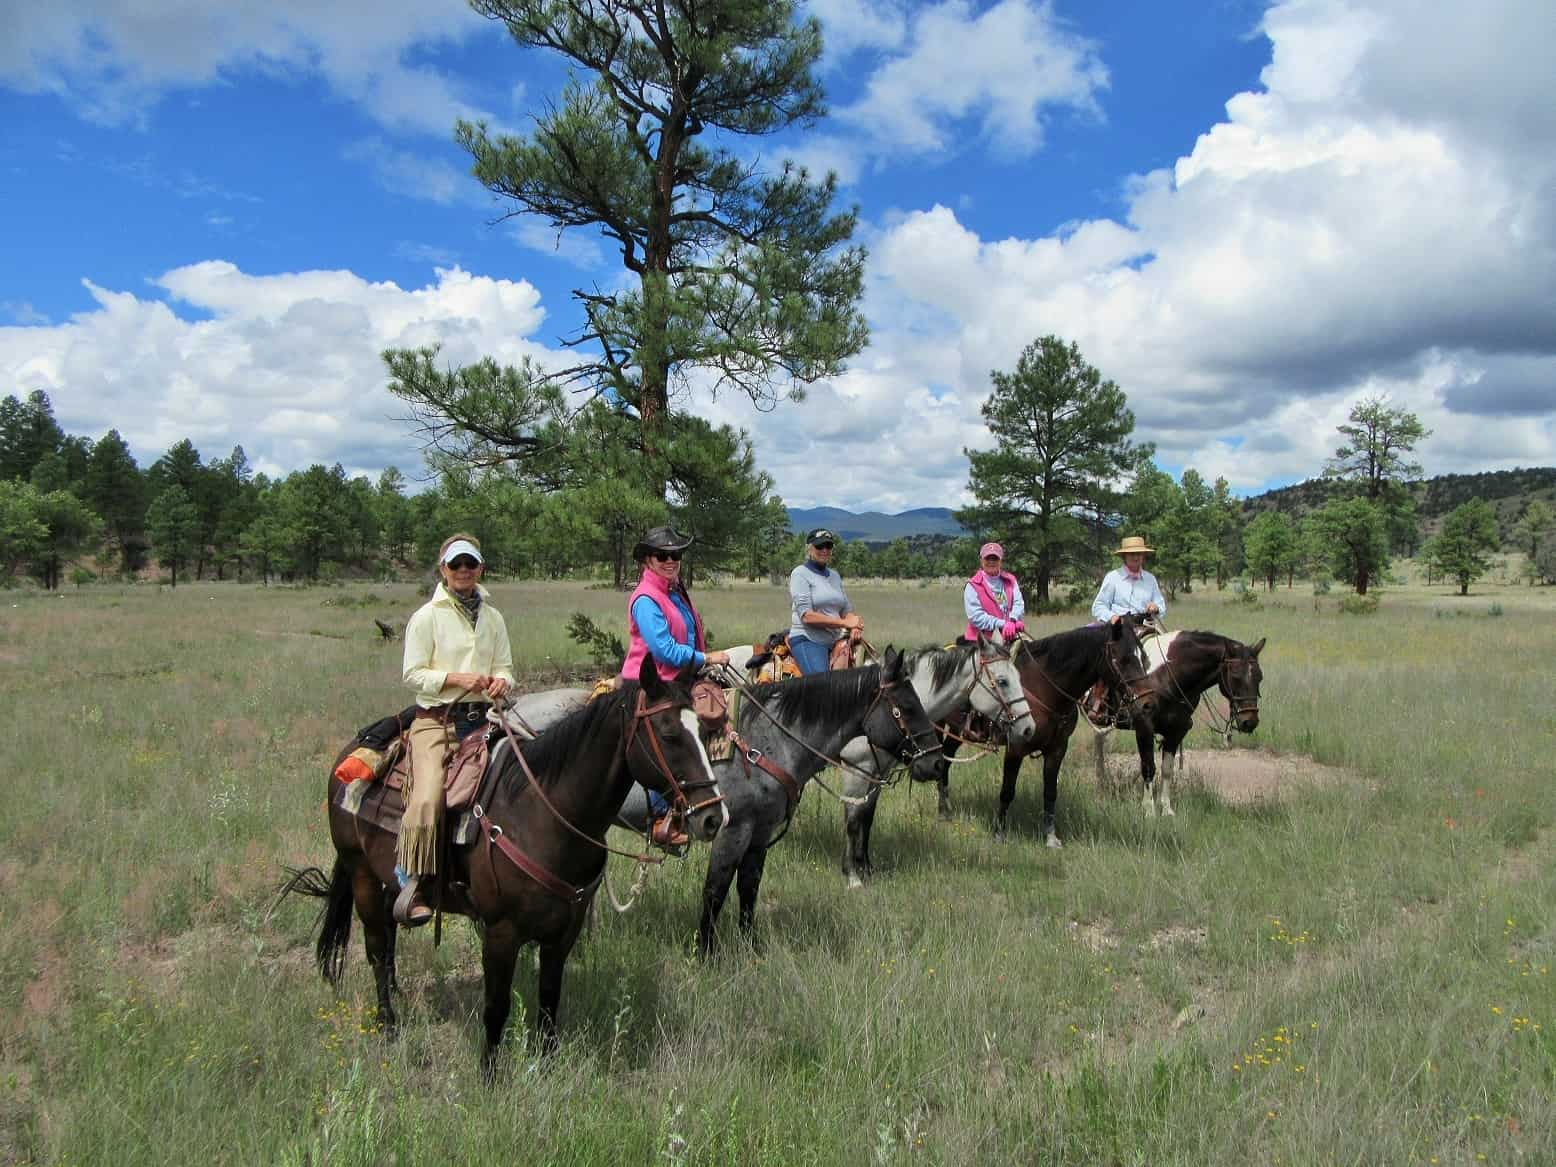 Cowgirl Getaways, Geronimo Trail Guest Ranch, Gila National Forest, New Mexico, Horseback Riding, Trail Riding, Dude Ranch, Guest Ranch